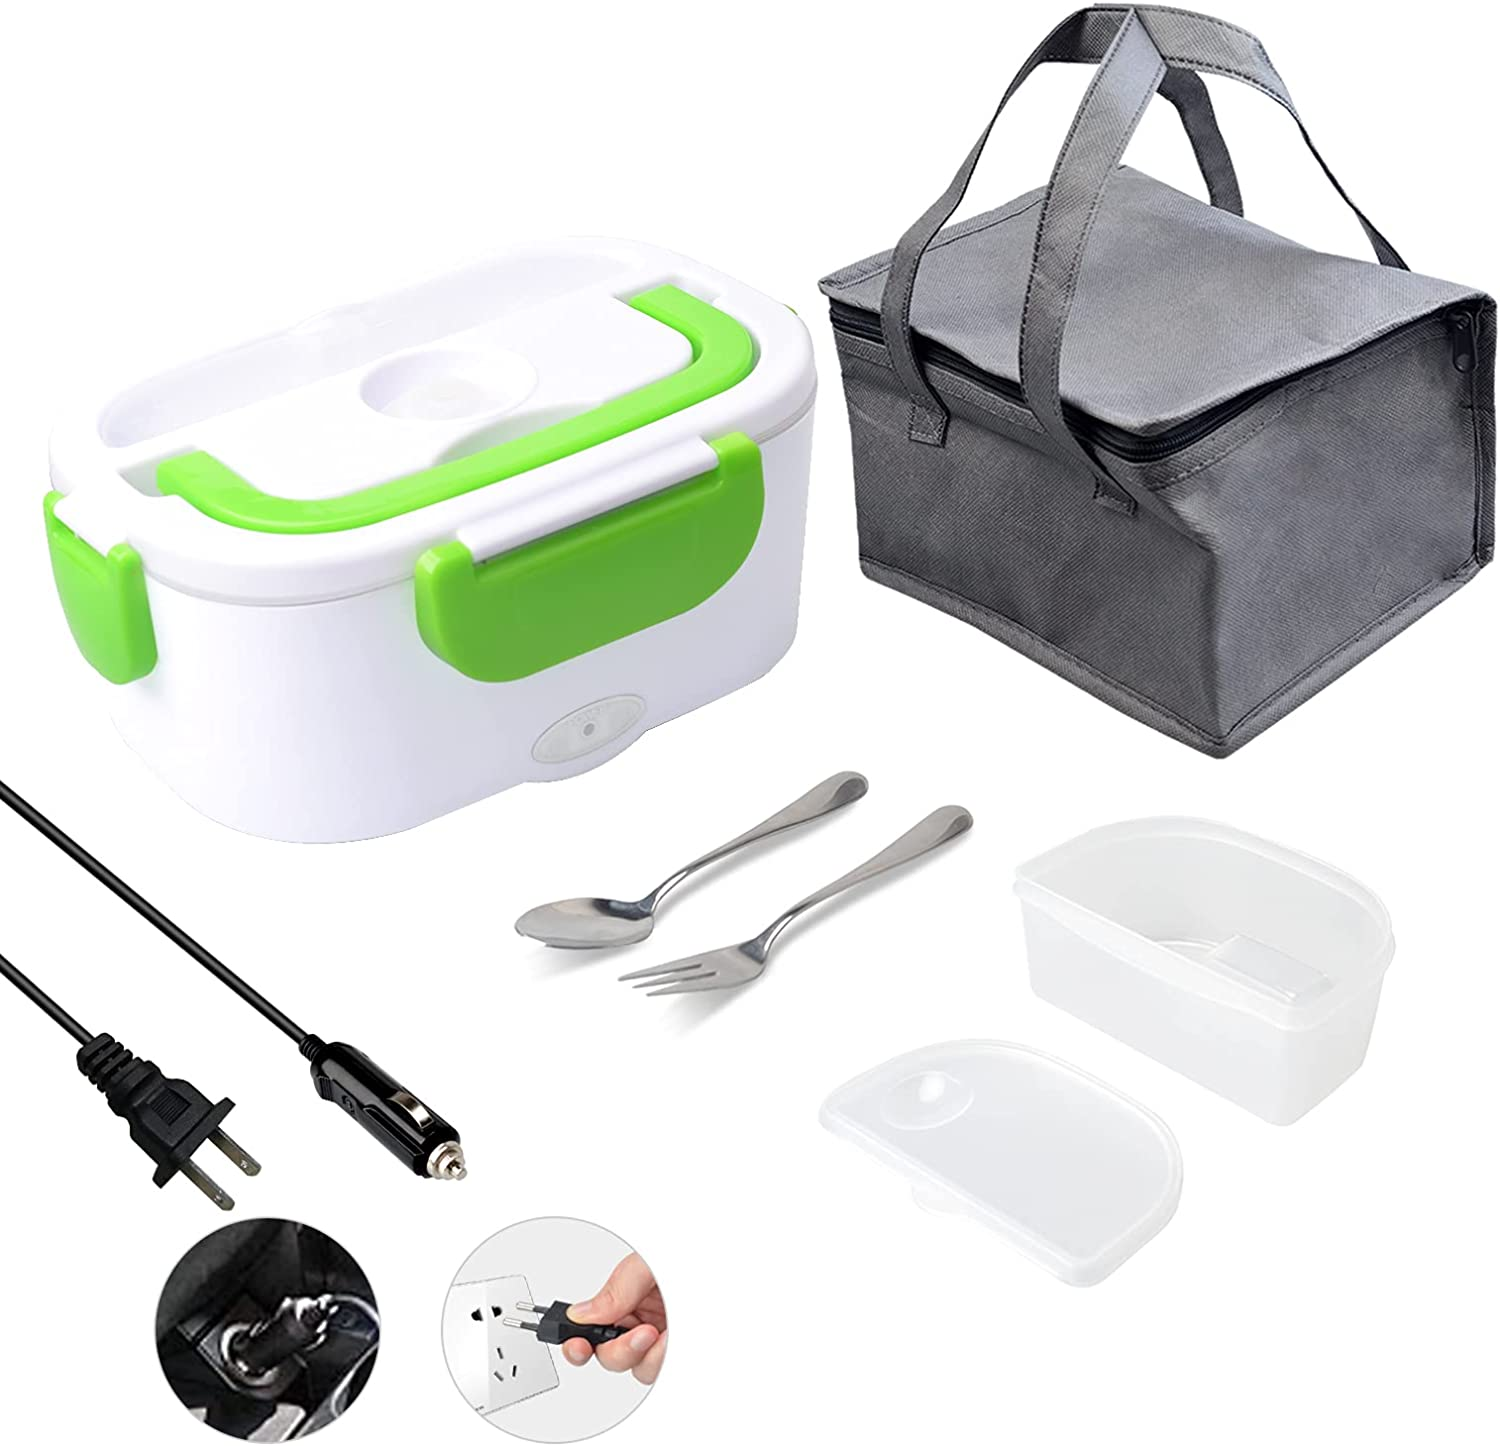 Electric Lunch Box 2 in 1,Portable Food Warmer Heating,Removable 304 Food-Grade Stainless Steel 1.5L,For Car,Truck, Work, Home 12V&110V 40W, Include Insulated Lunch Bag(Green)